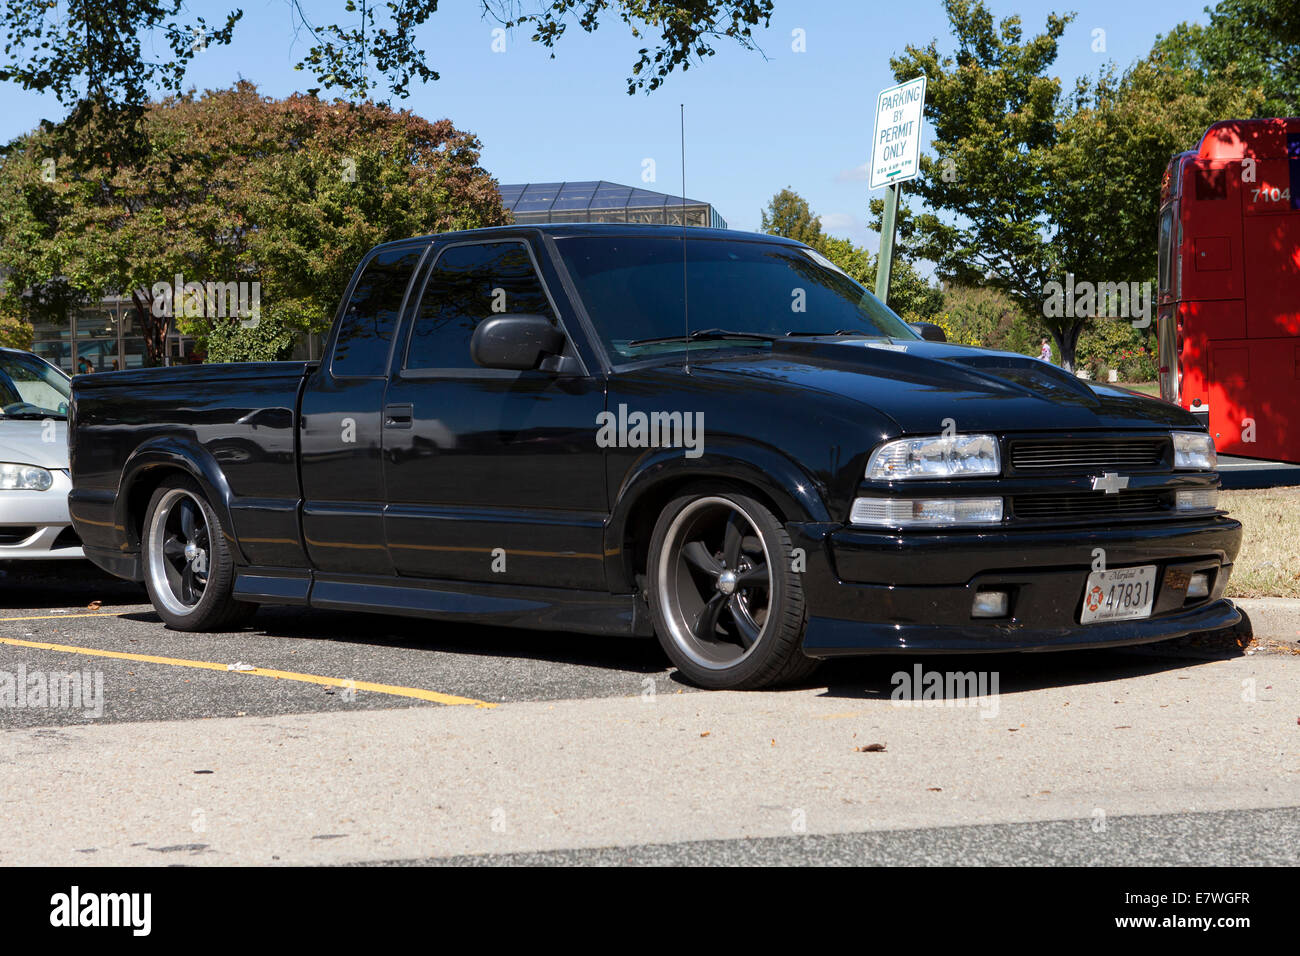 Lowered suspension pickup truck - USA - Stock Image